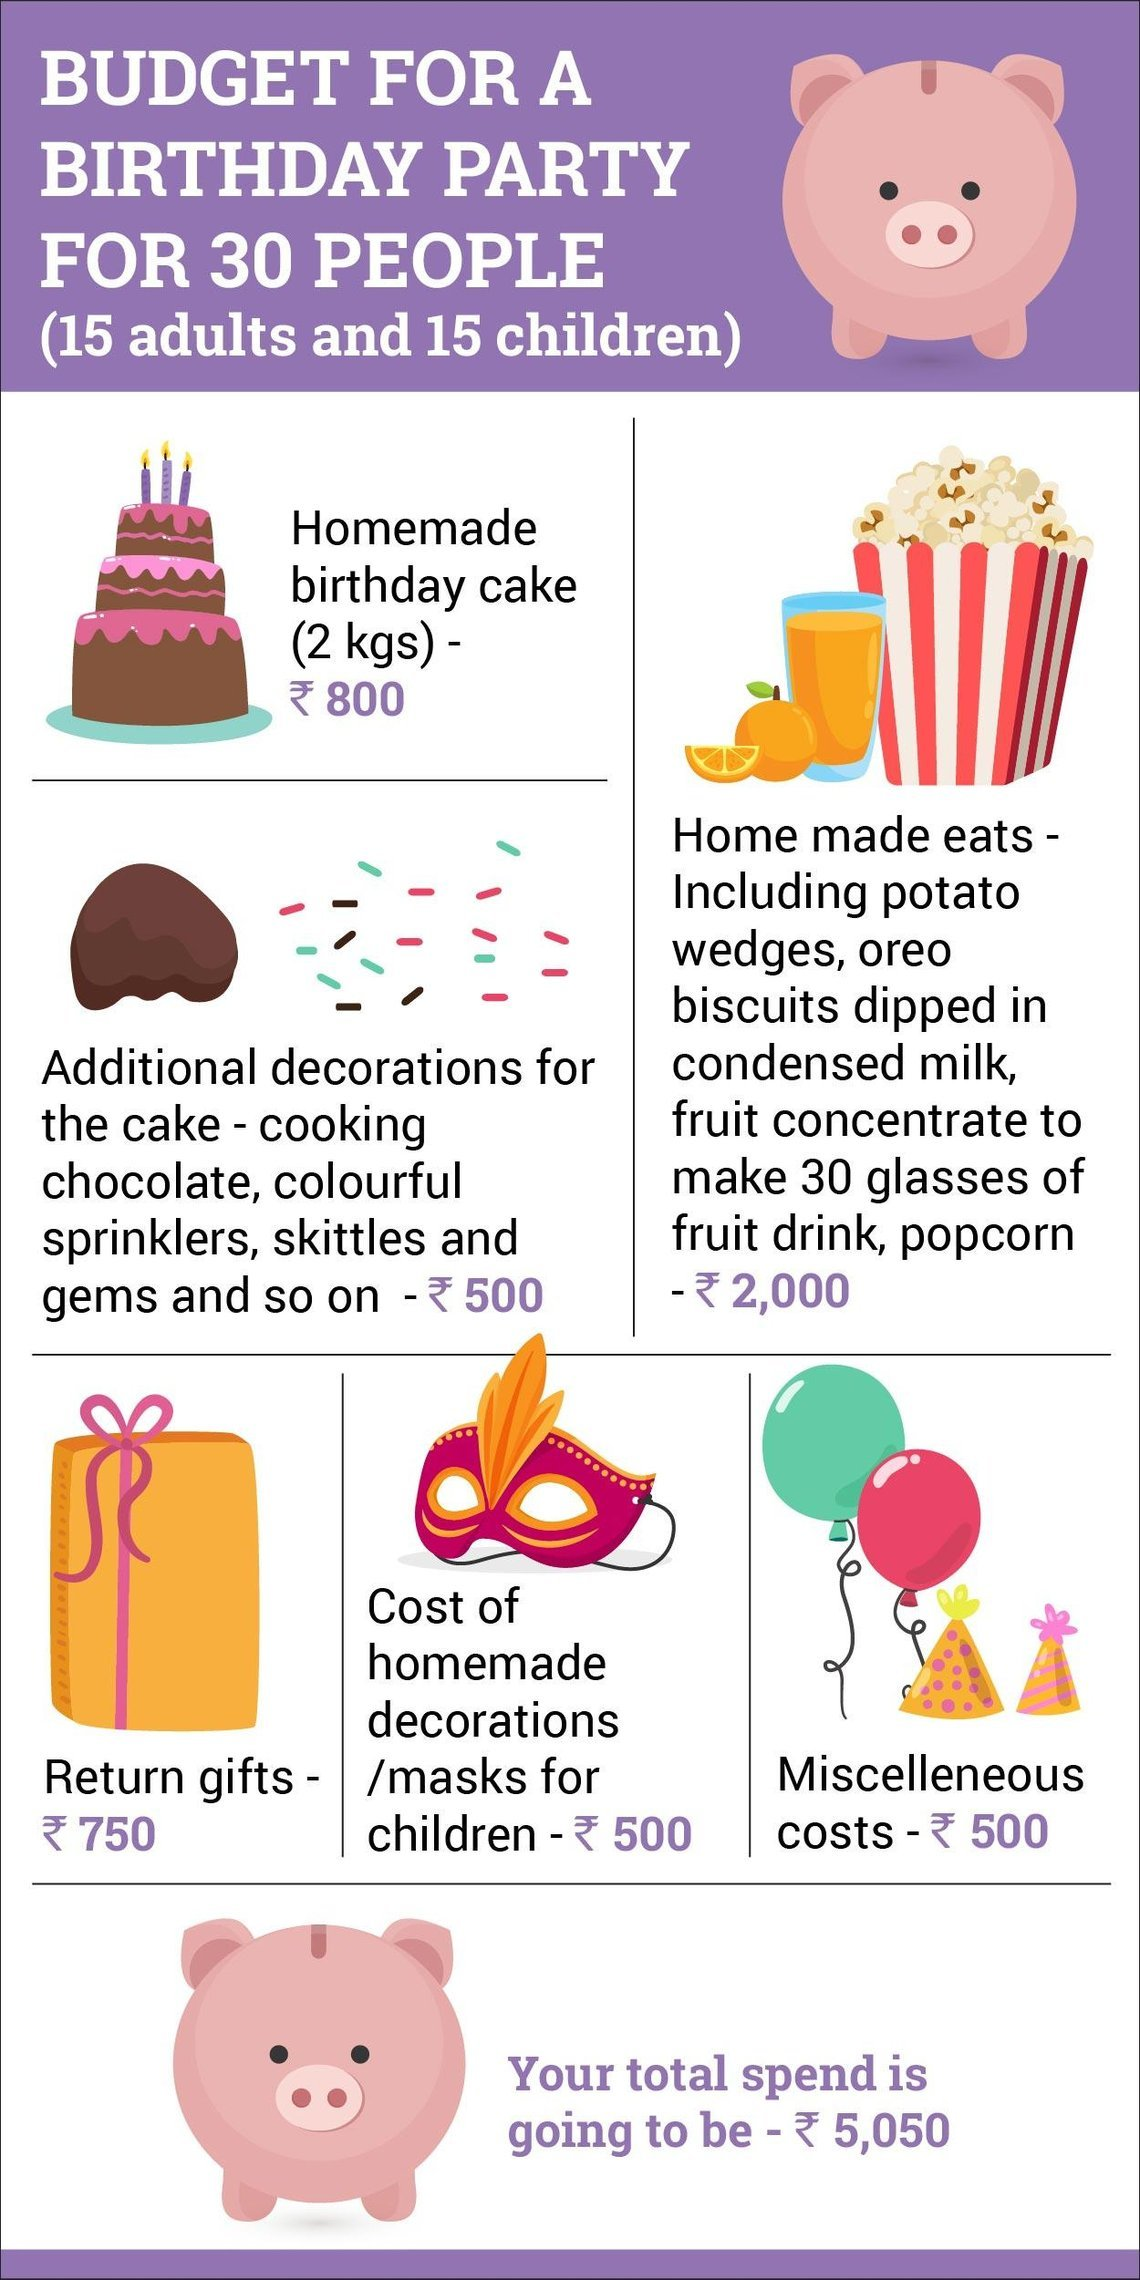 7 Ways to Make the 1st Birthday Party Cost-Effective